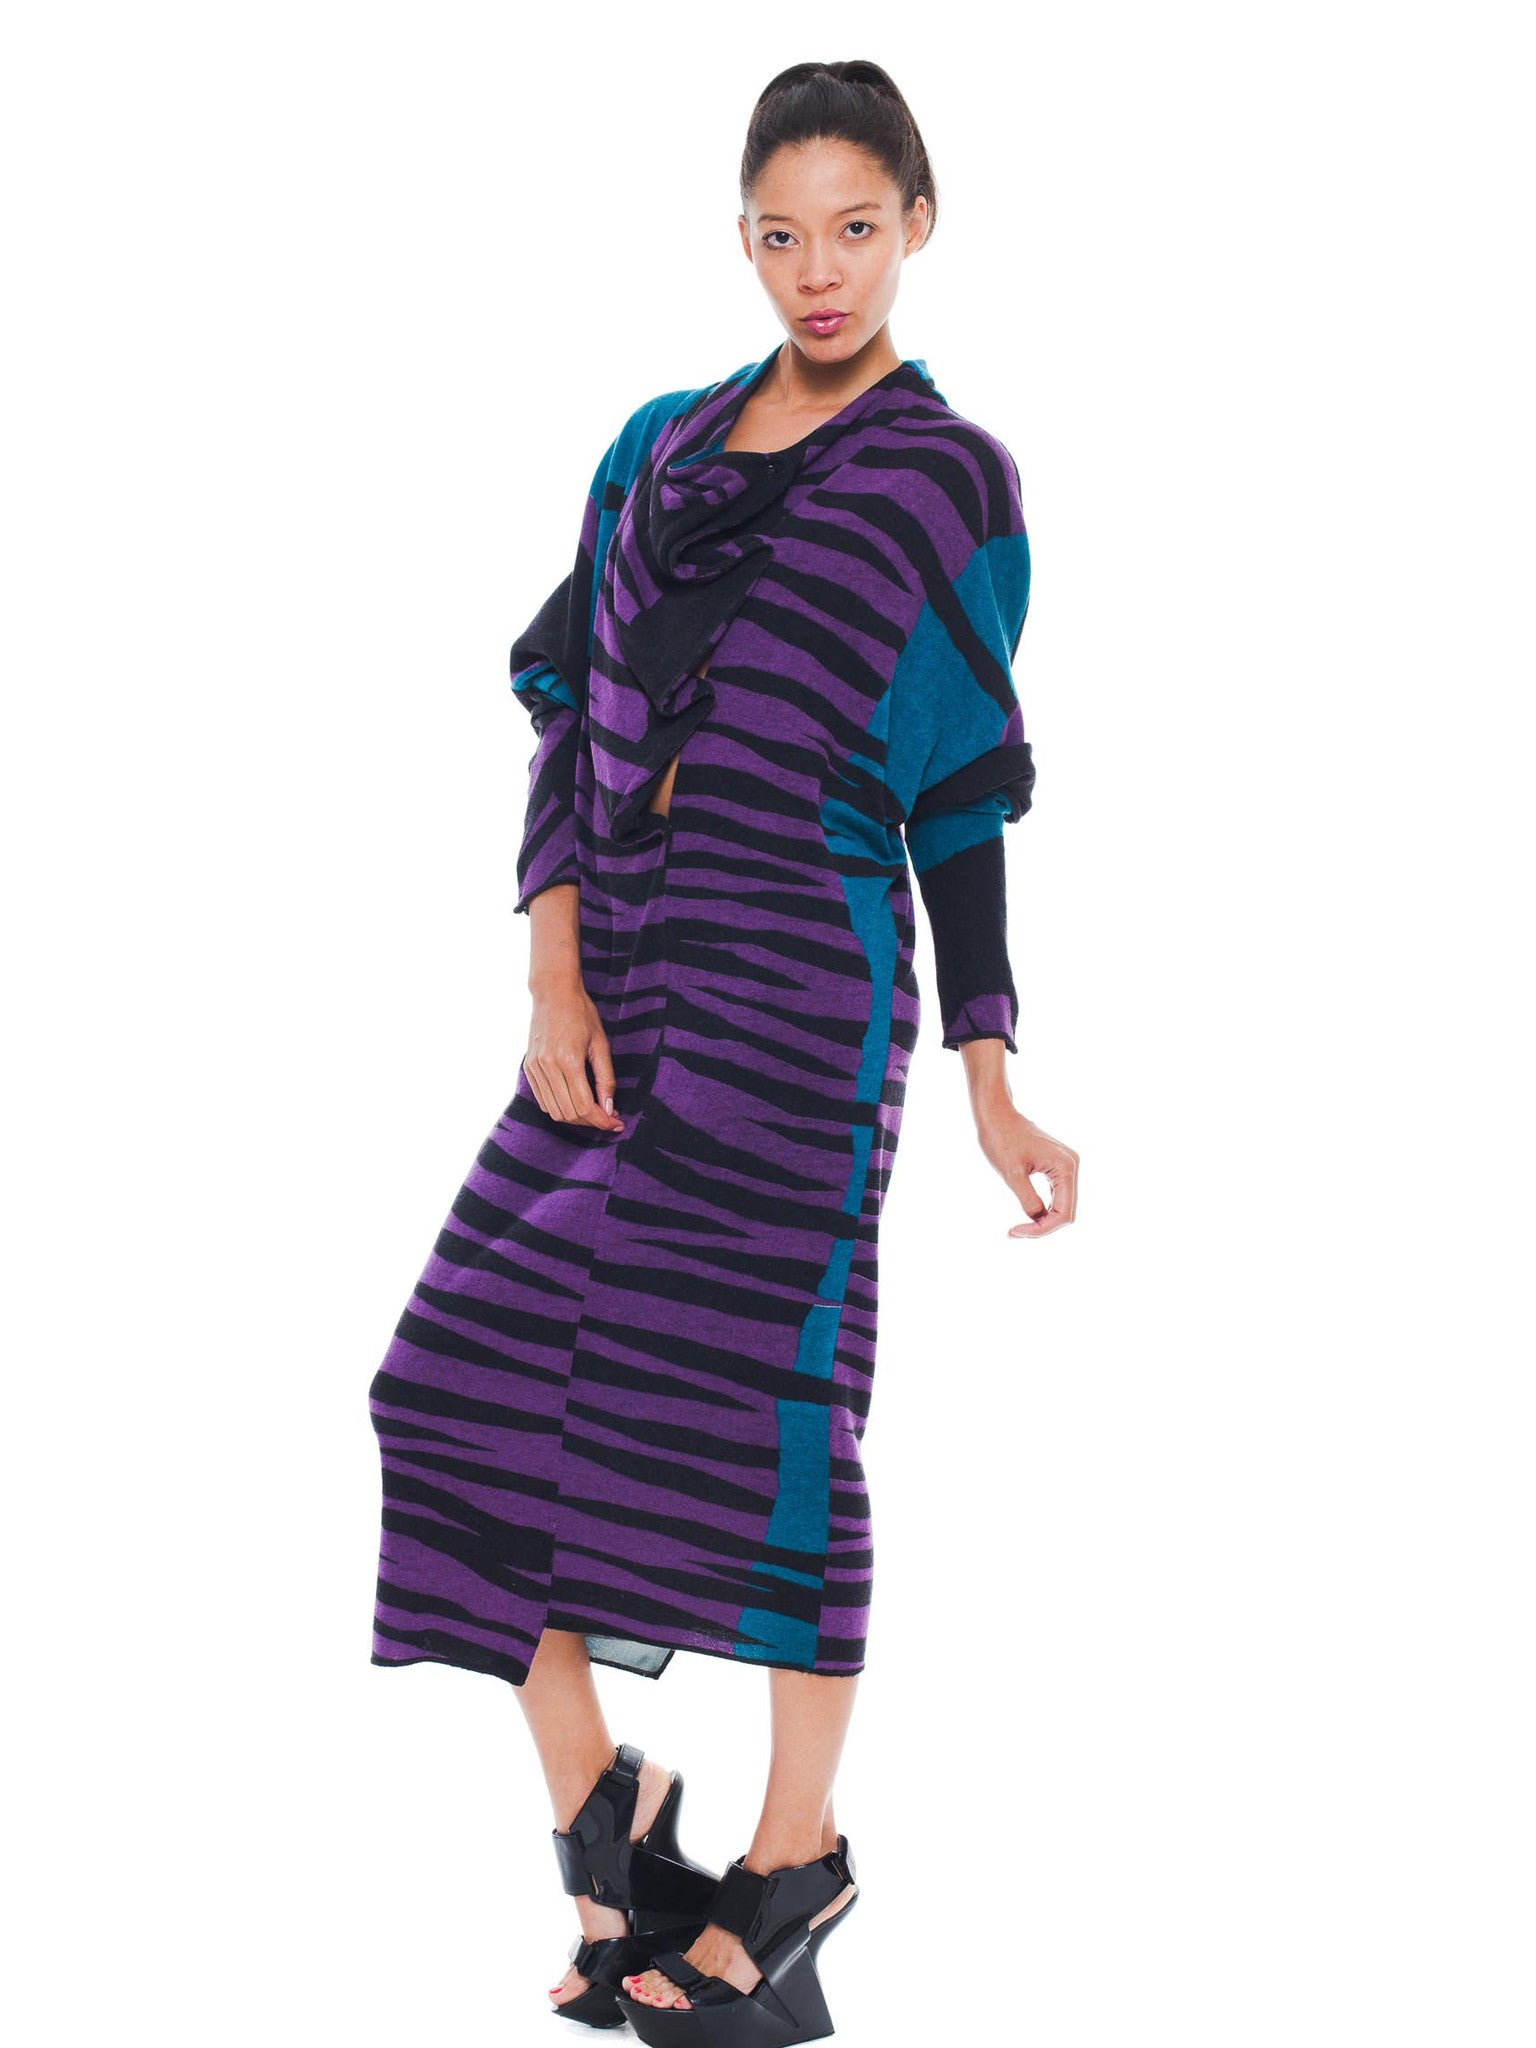 1980S JUNKO KOSHINO Purple & Blue Zebra  Angora Wool Knit Dolman Sweater Dress With Draped Snap Front